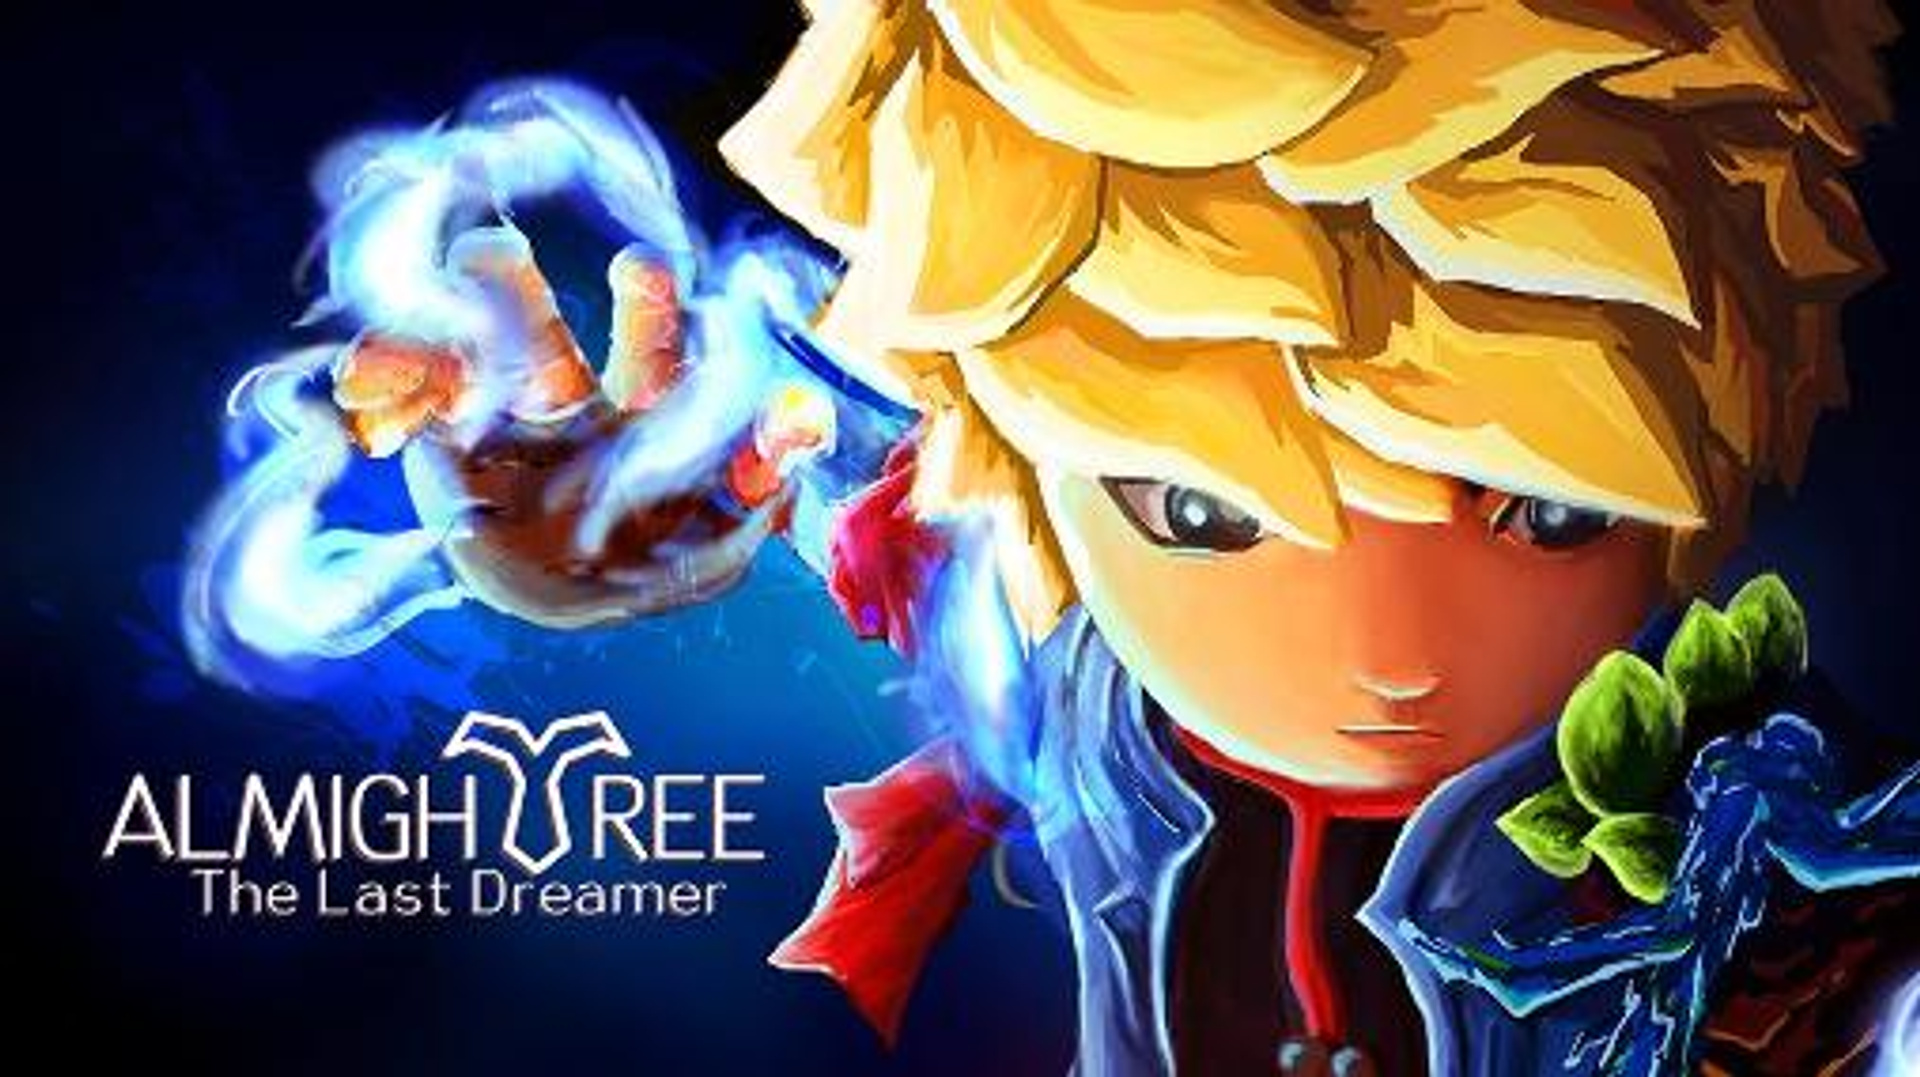 buy Almightree: The Last Dreamer cd key for pc platform